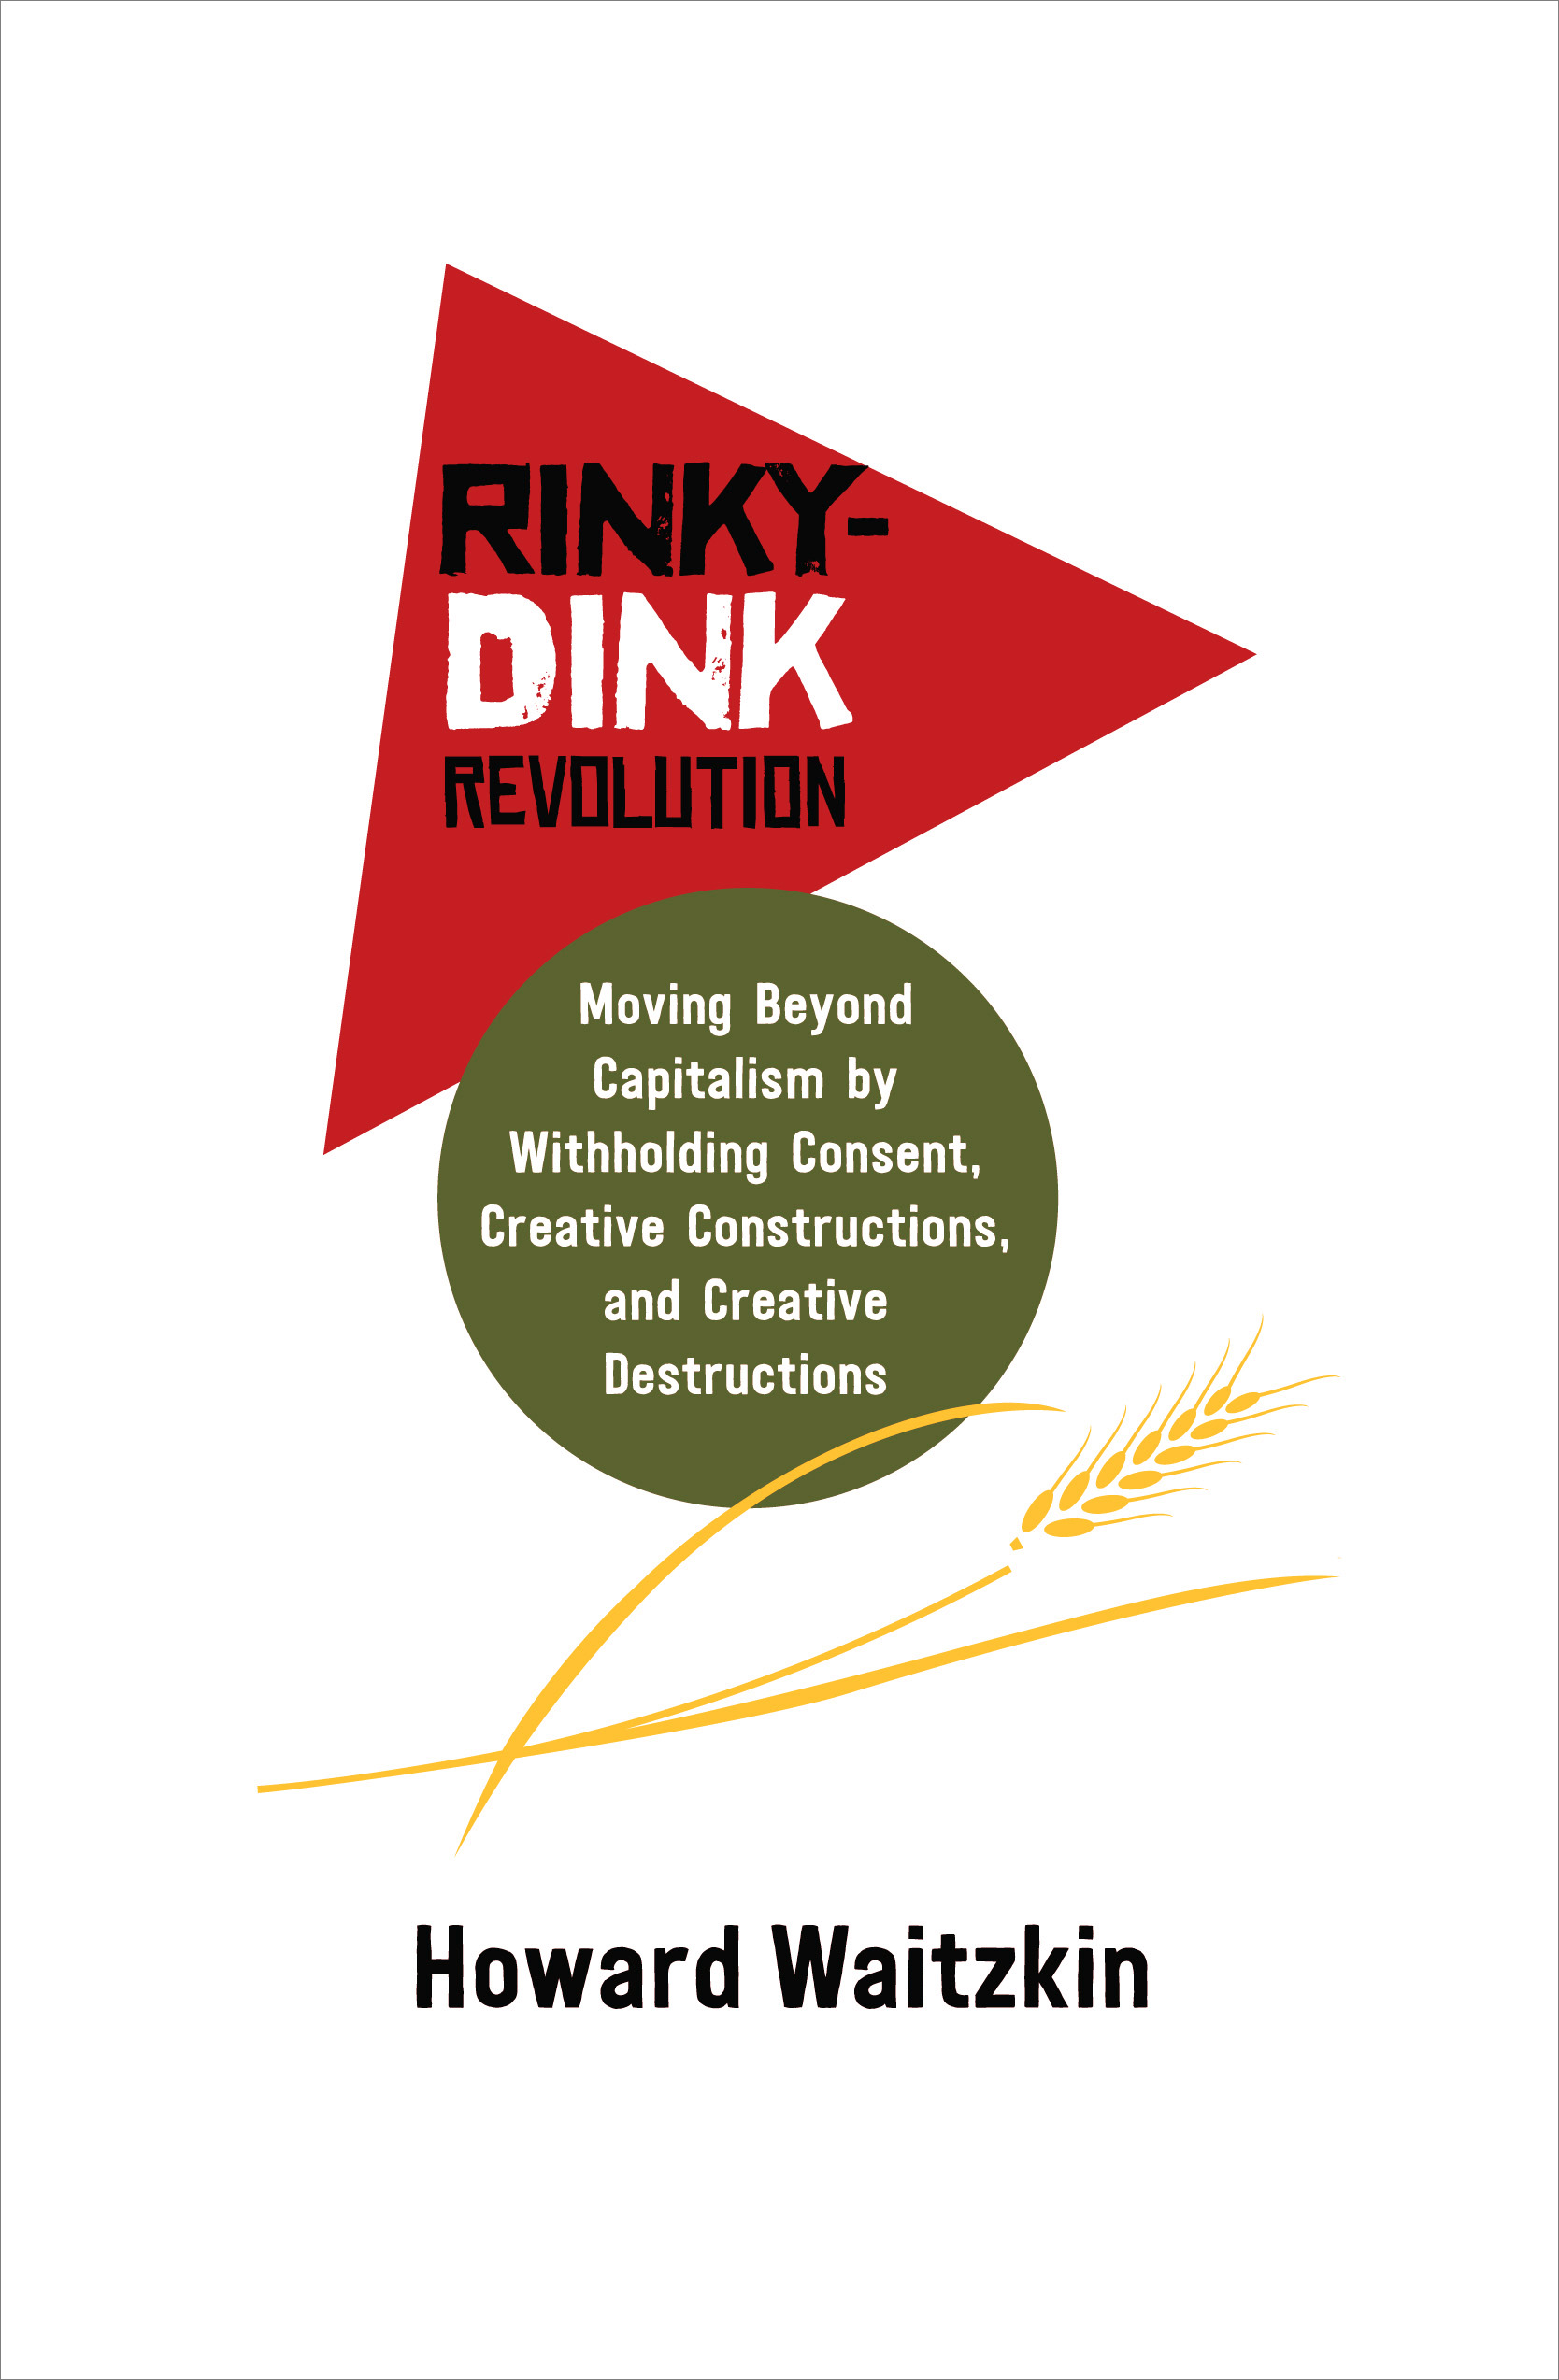 Rinky-Dink Revolution: Moving Beyond Capitalism by Withholding Consent, Creative Constructions, and Creative Destructions